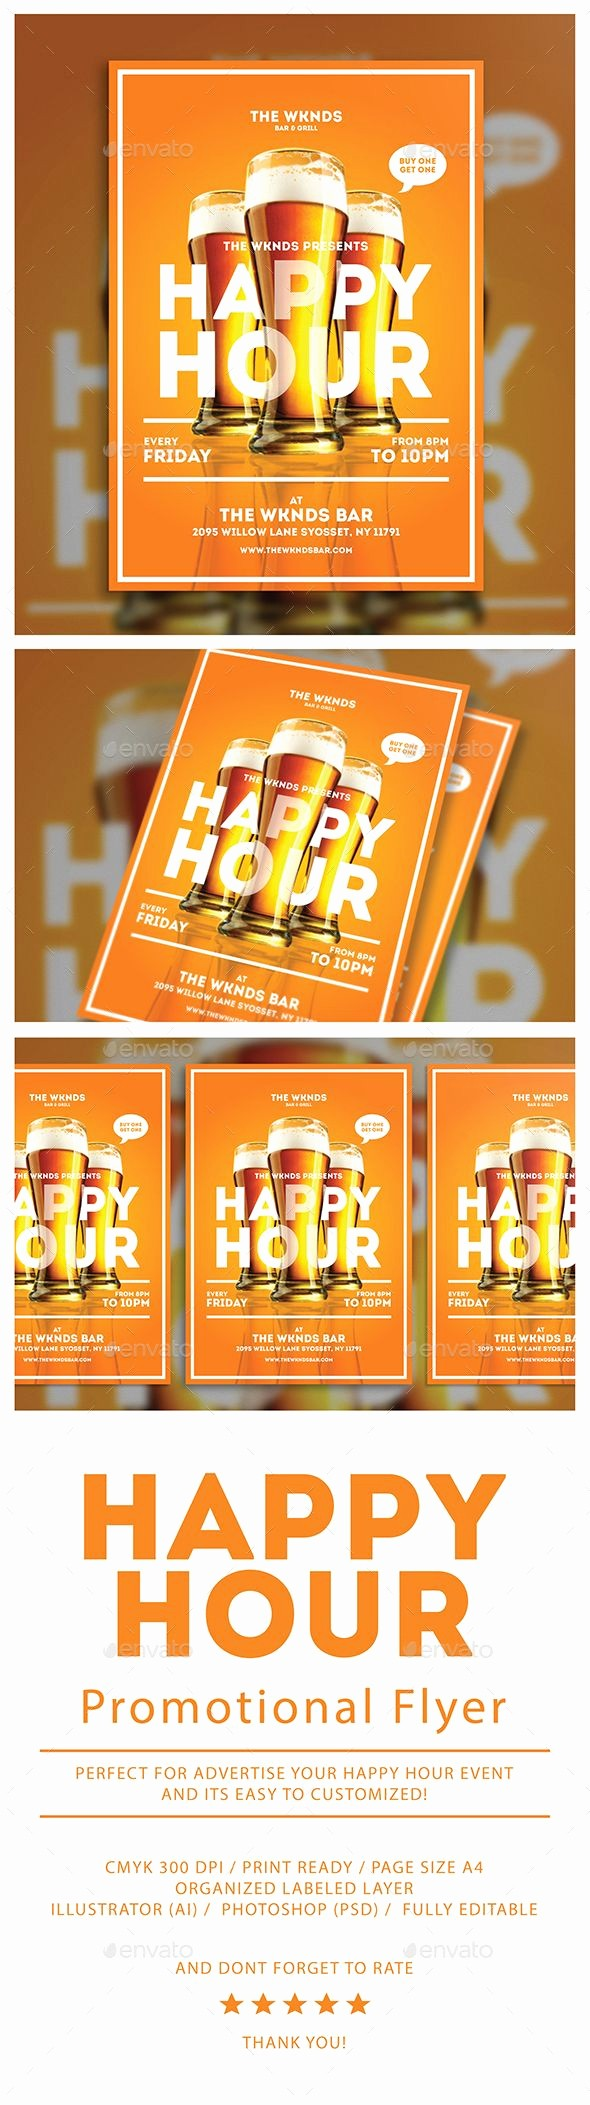 Happy Hour Flyer Template Free Luxury Happy Hour Flyer